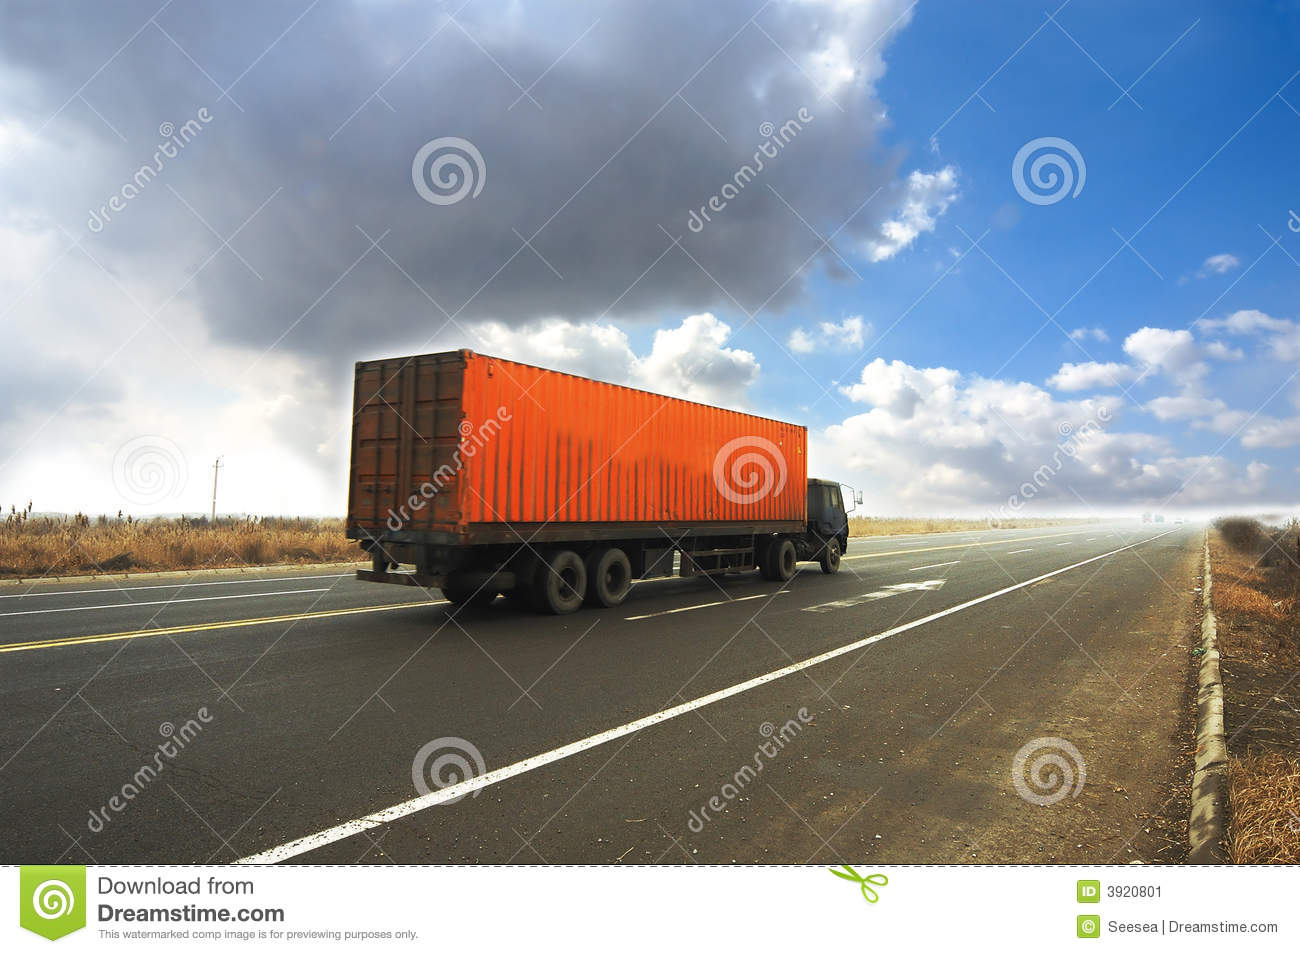 Container Truck Stock Image - Image: 3920801